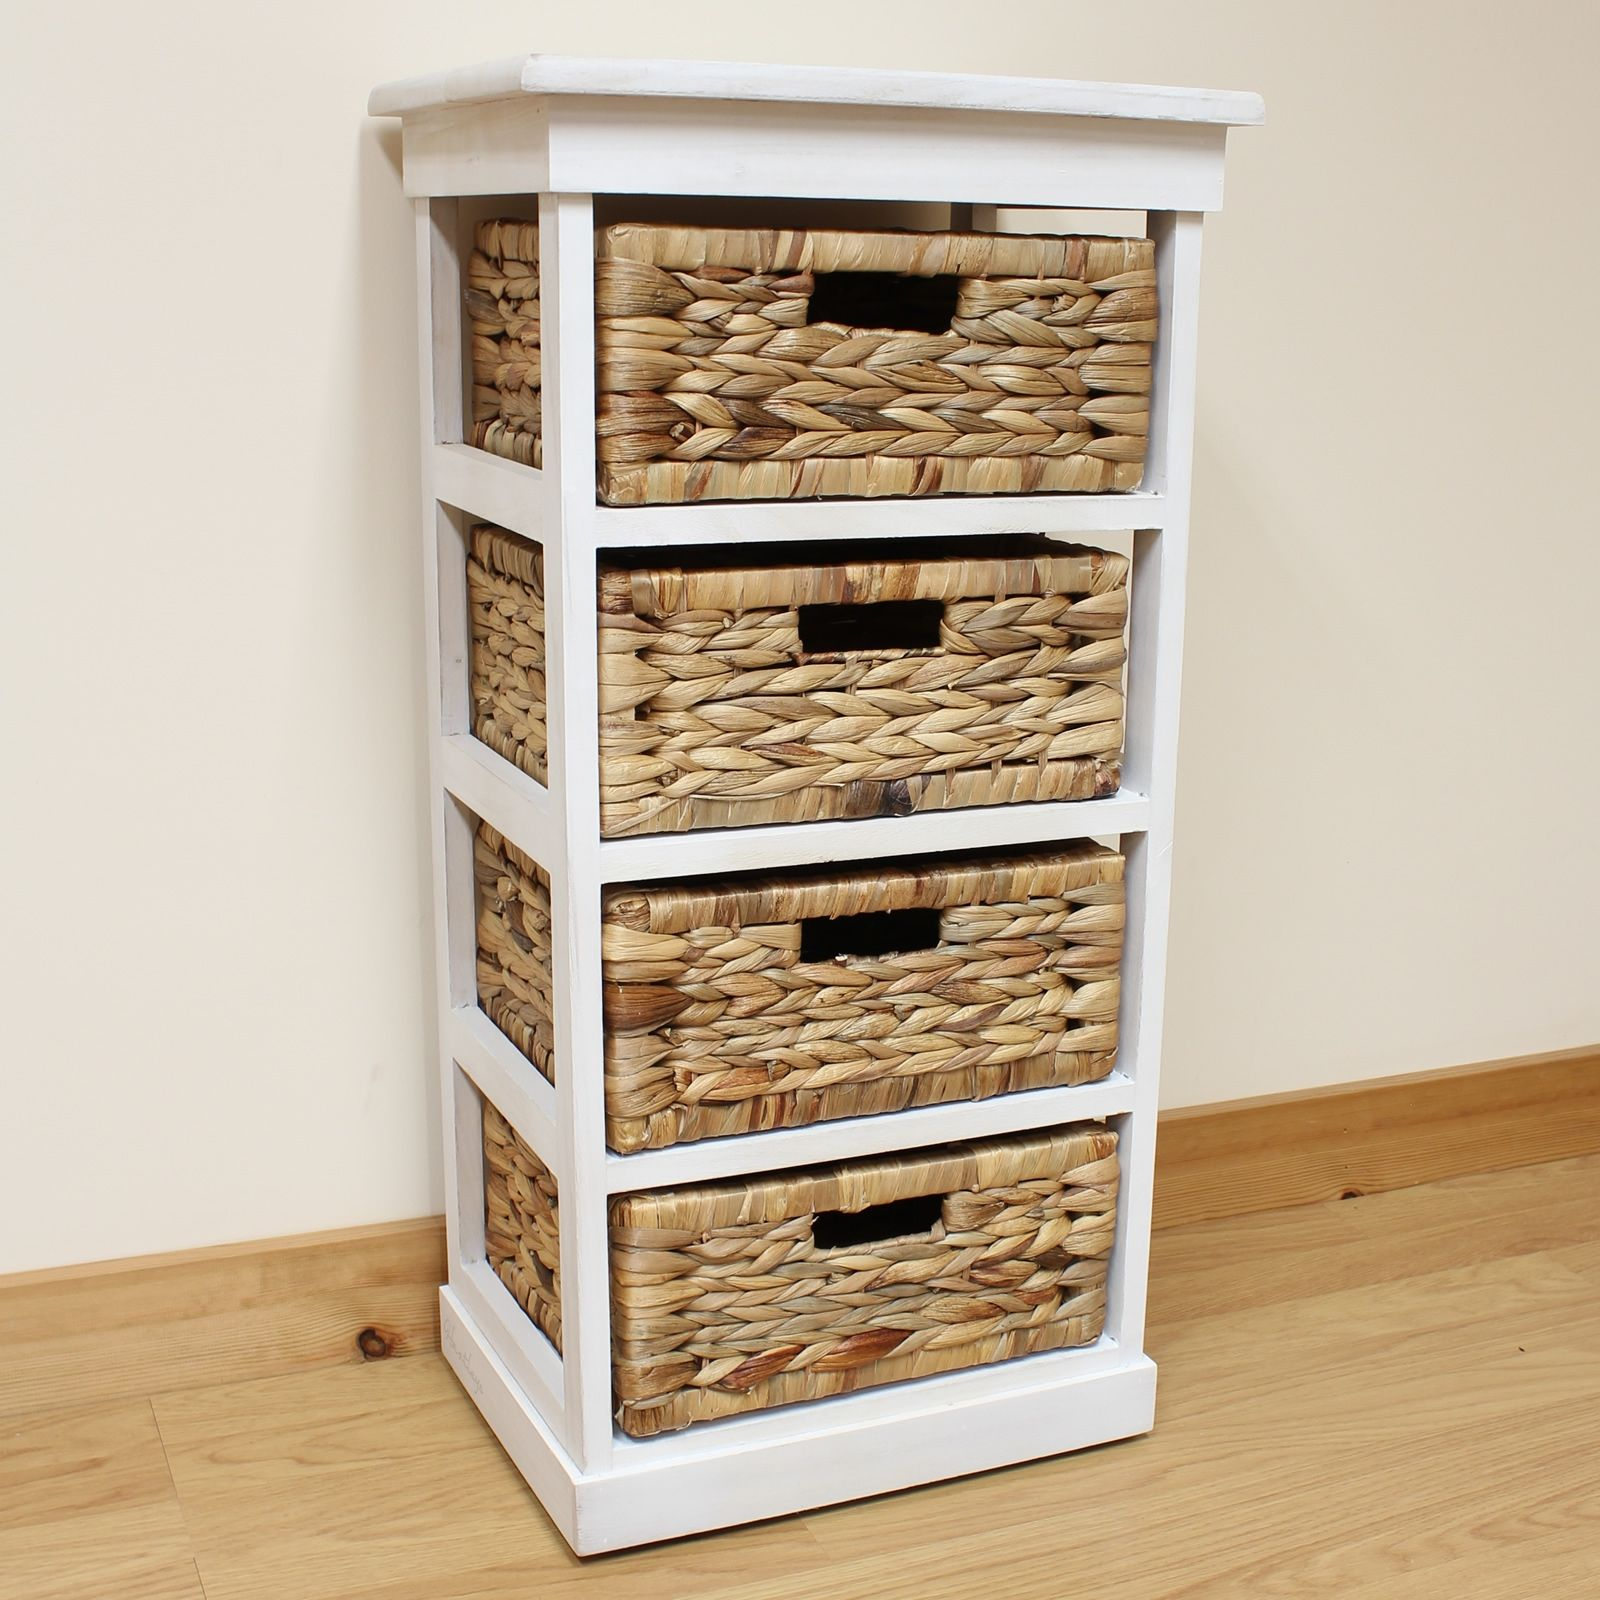 Drawer Low Wicker Storage Unit With Wooden Frame Drawer Pulls Also Known As Merely Pulls Are The Knob Like Handles Whi